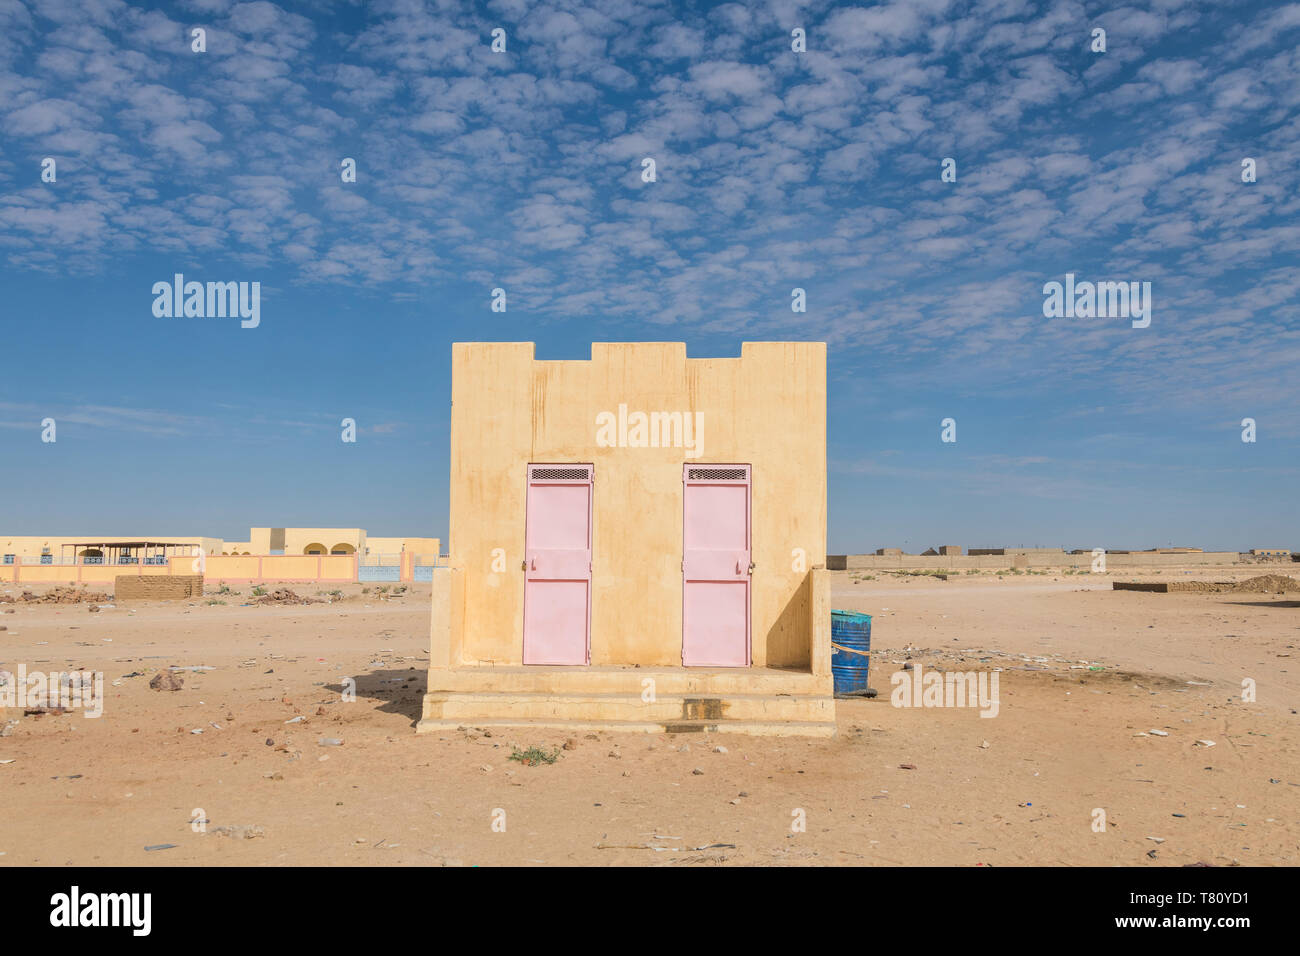 Tradtional house, Sahel, Chad, Africa - Stock Image